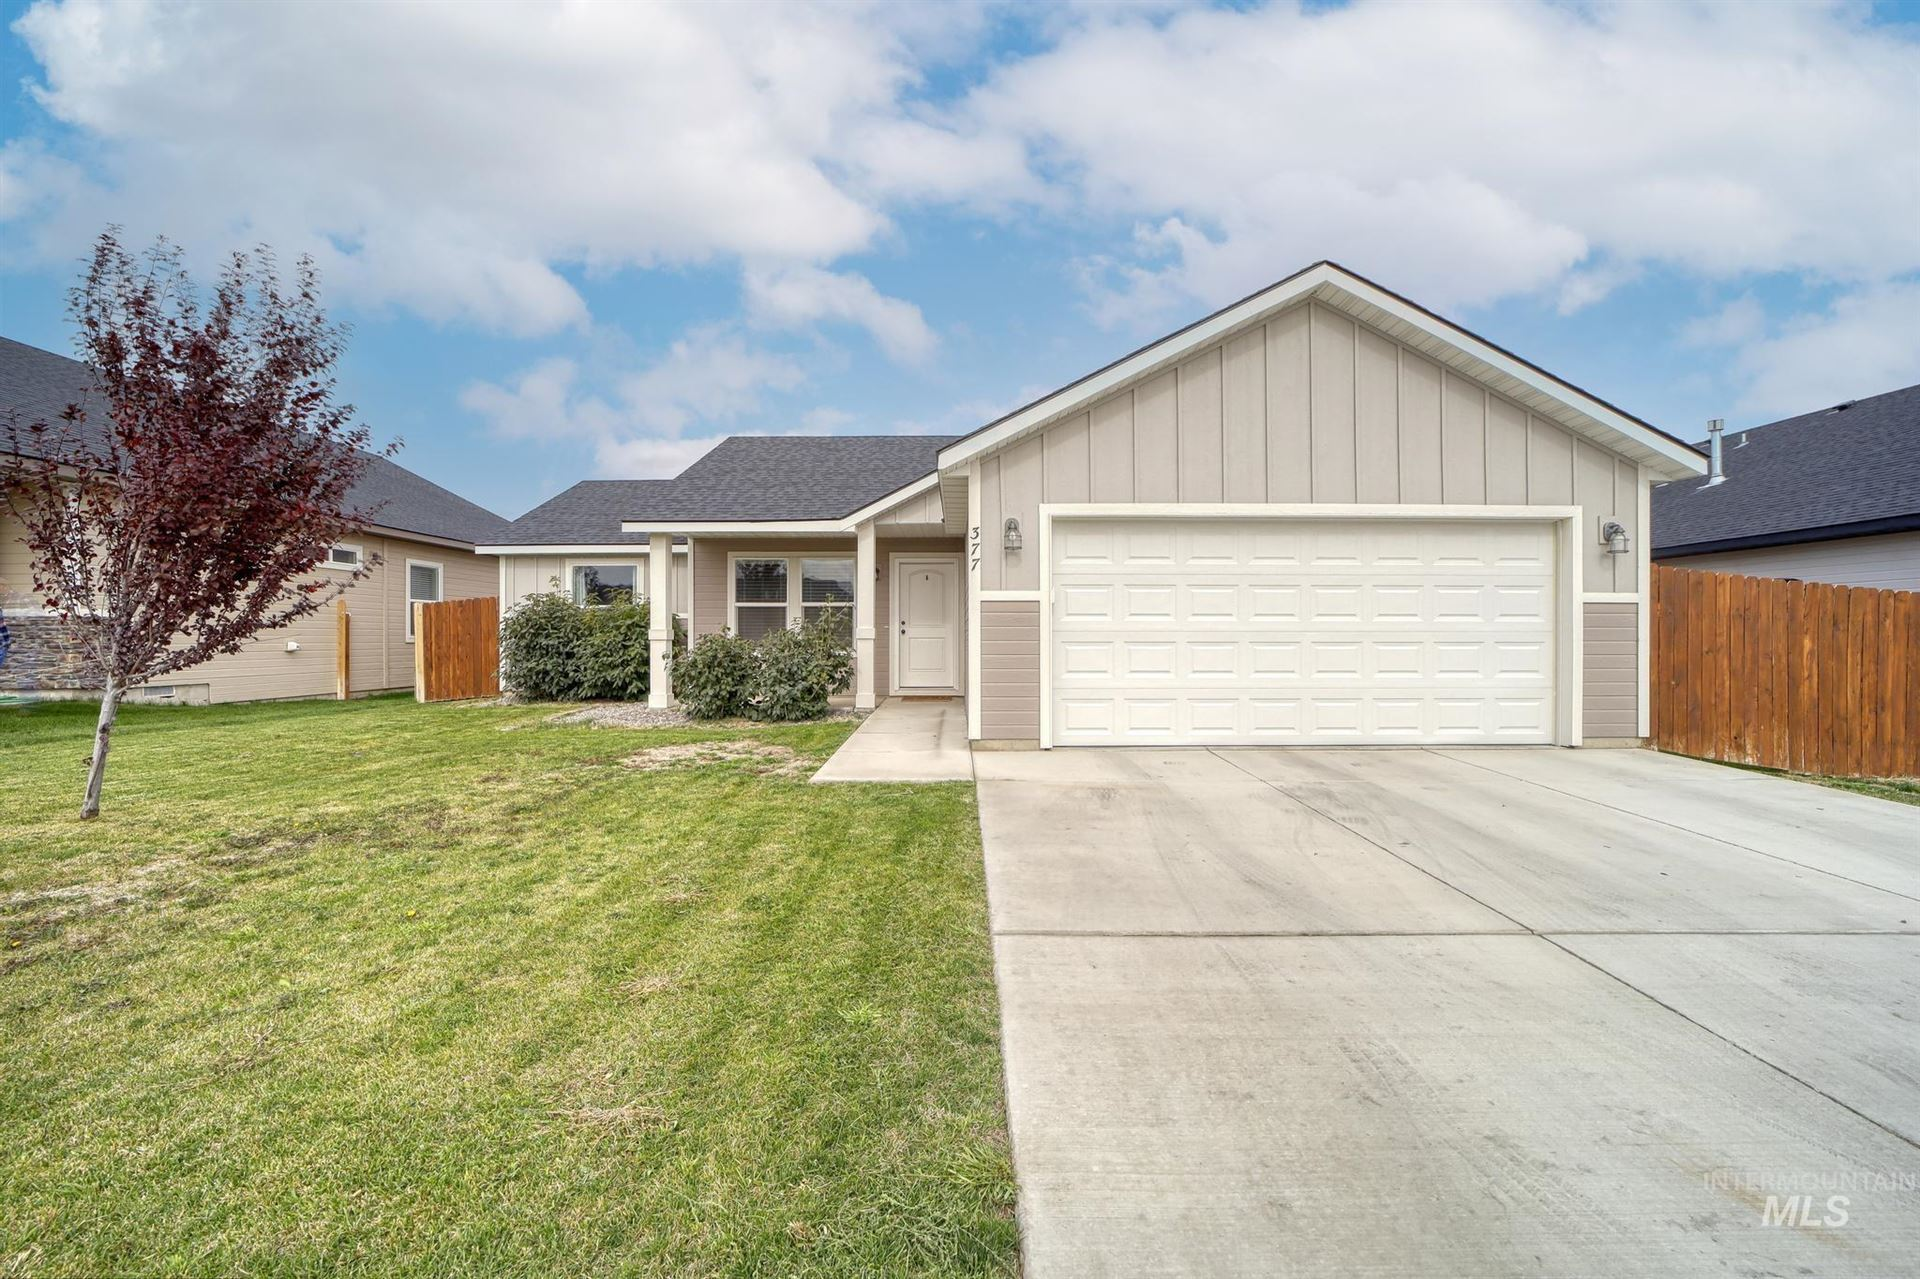 377 Feather Ave, Twin Falls, ID 83301 - MLS#: 98822460